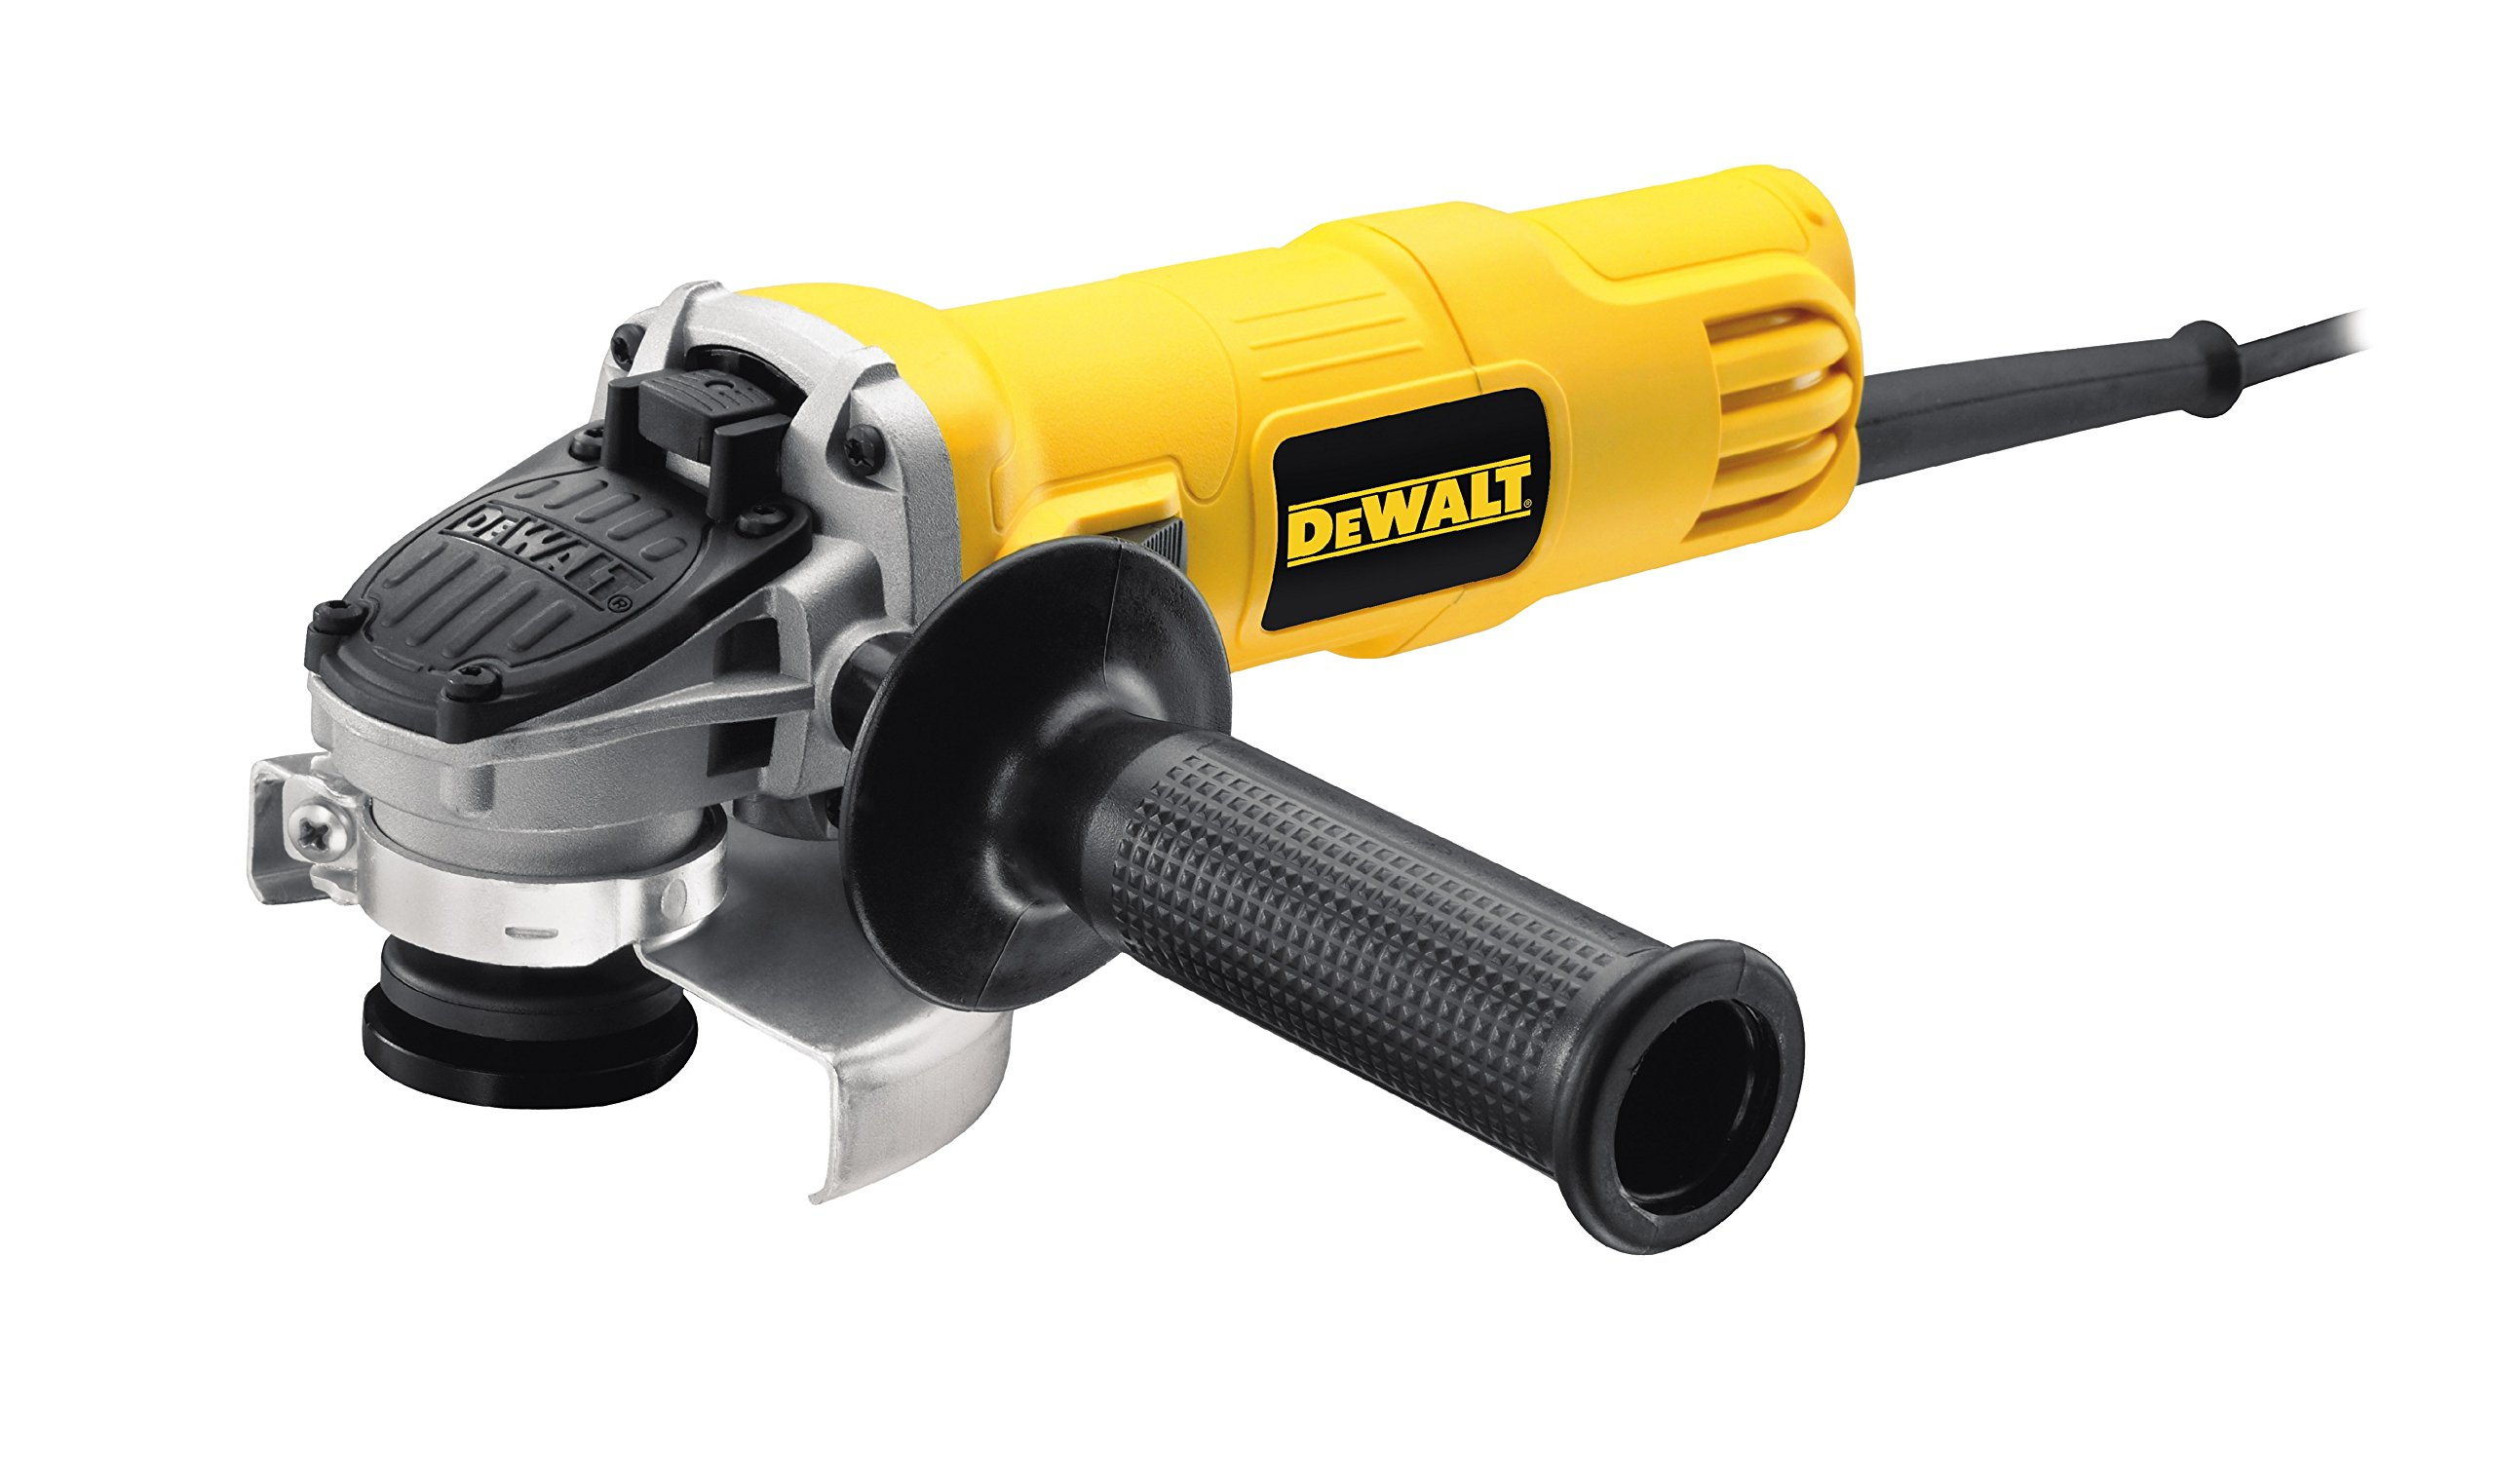 DEWALT DWE4056-QS - Mini Amoladora 115mm, 800W, 11.800 rpm product image